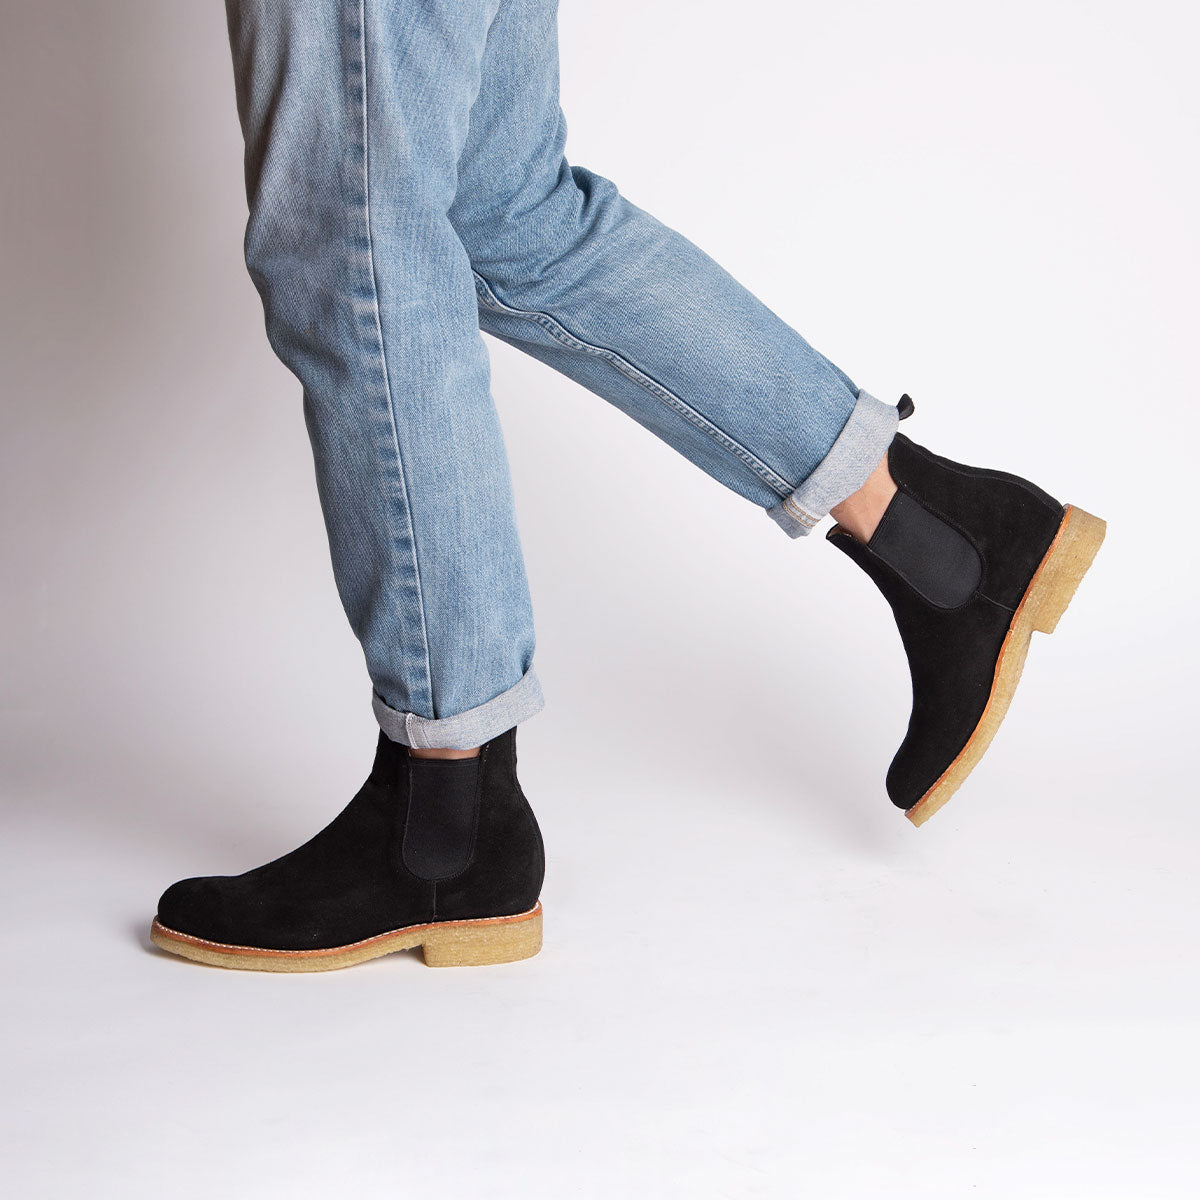 ARMANDO Chelsea Natural Boot Black Suede from Cano